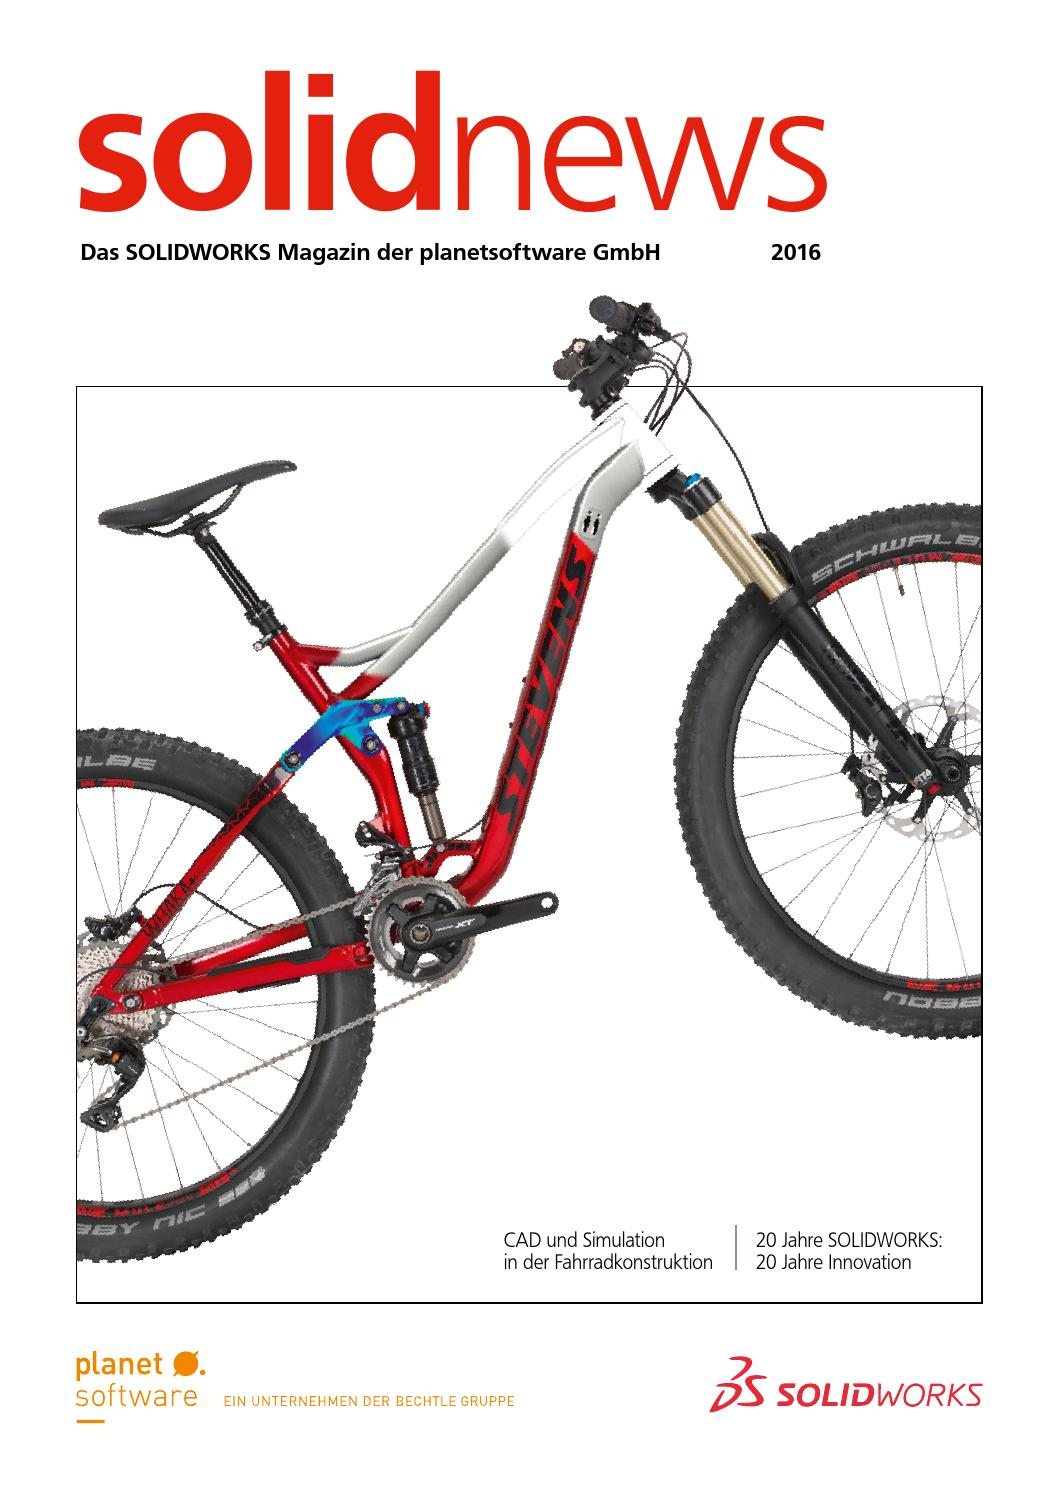 Solidnews 2016 by planetsoftware GmbH - issuu